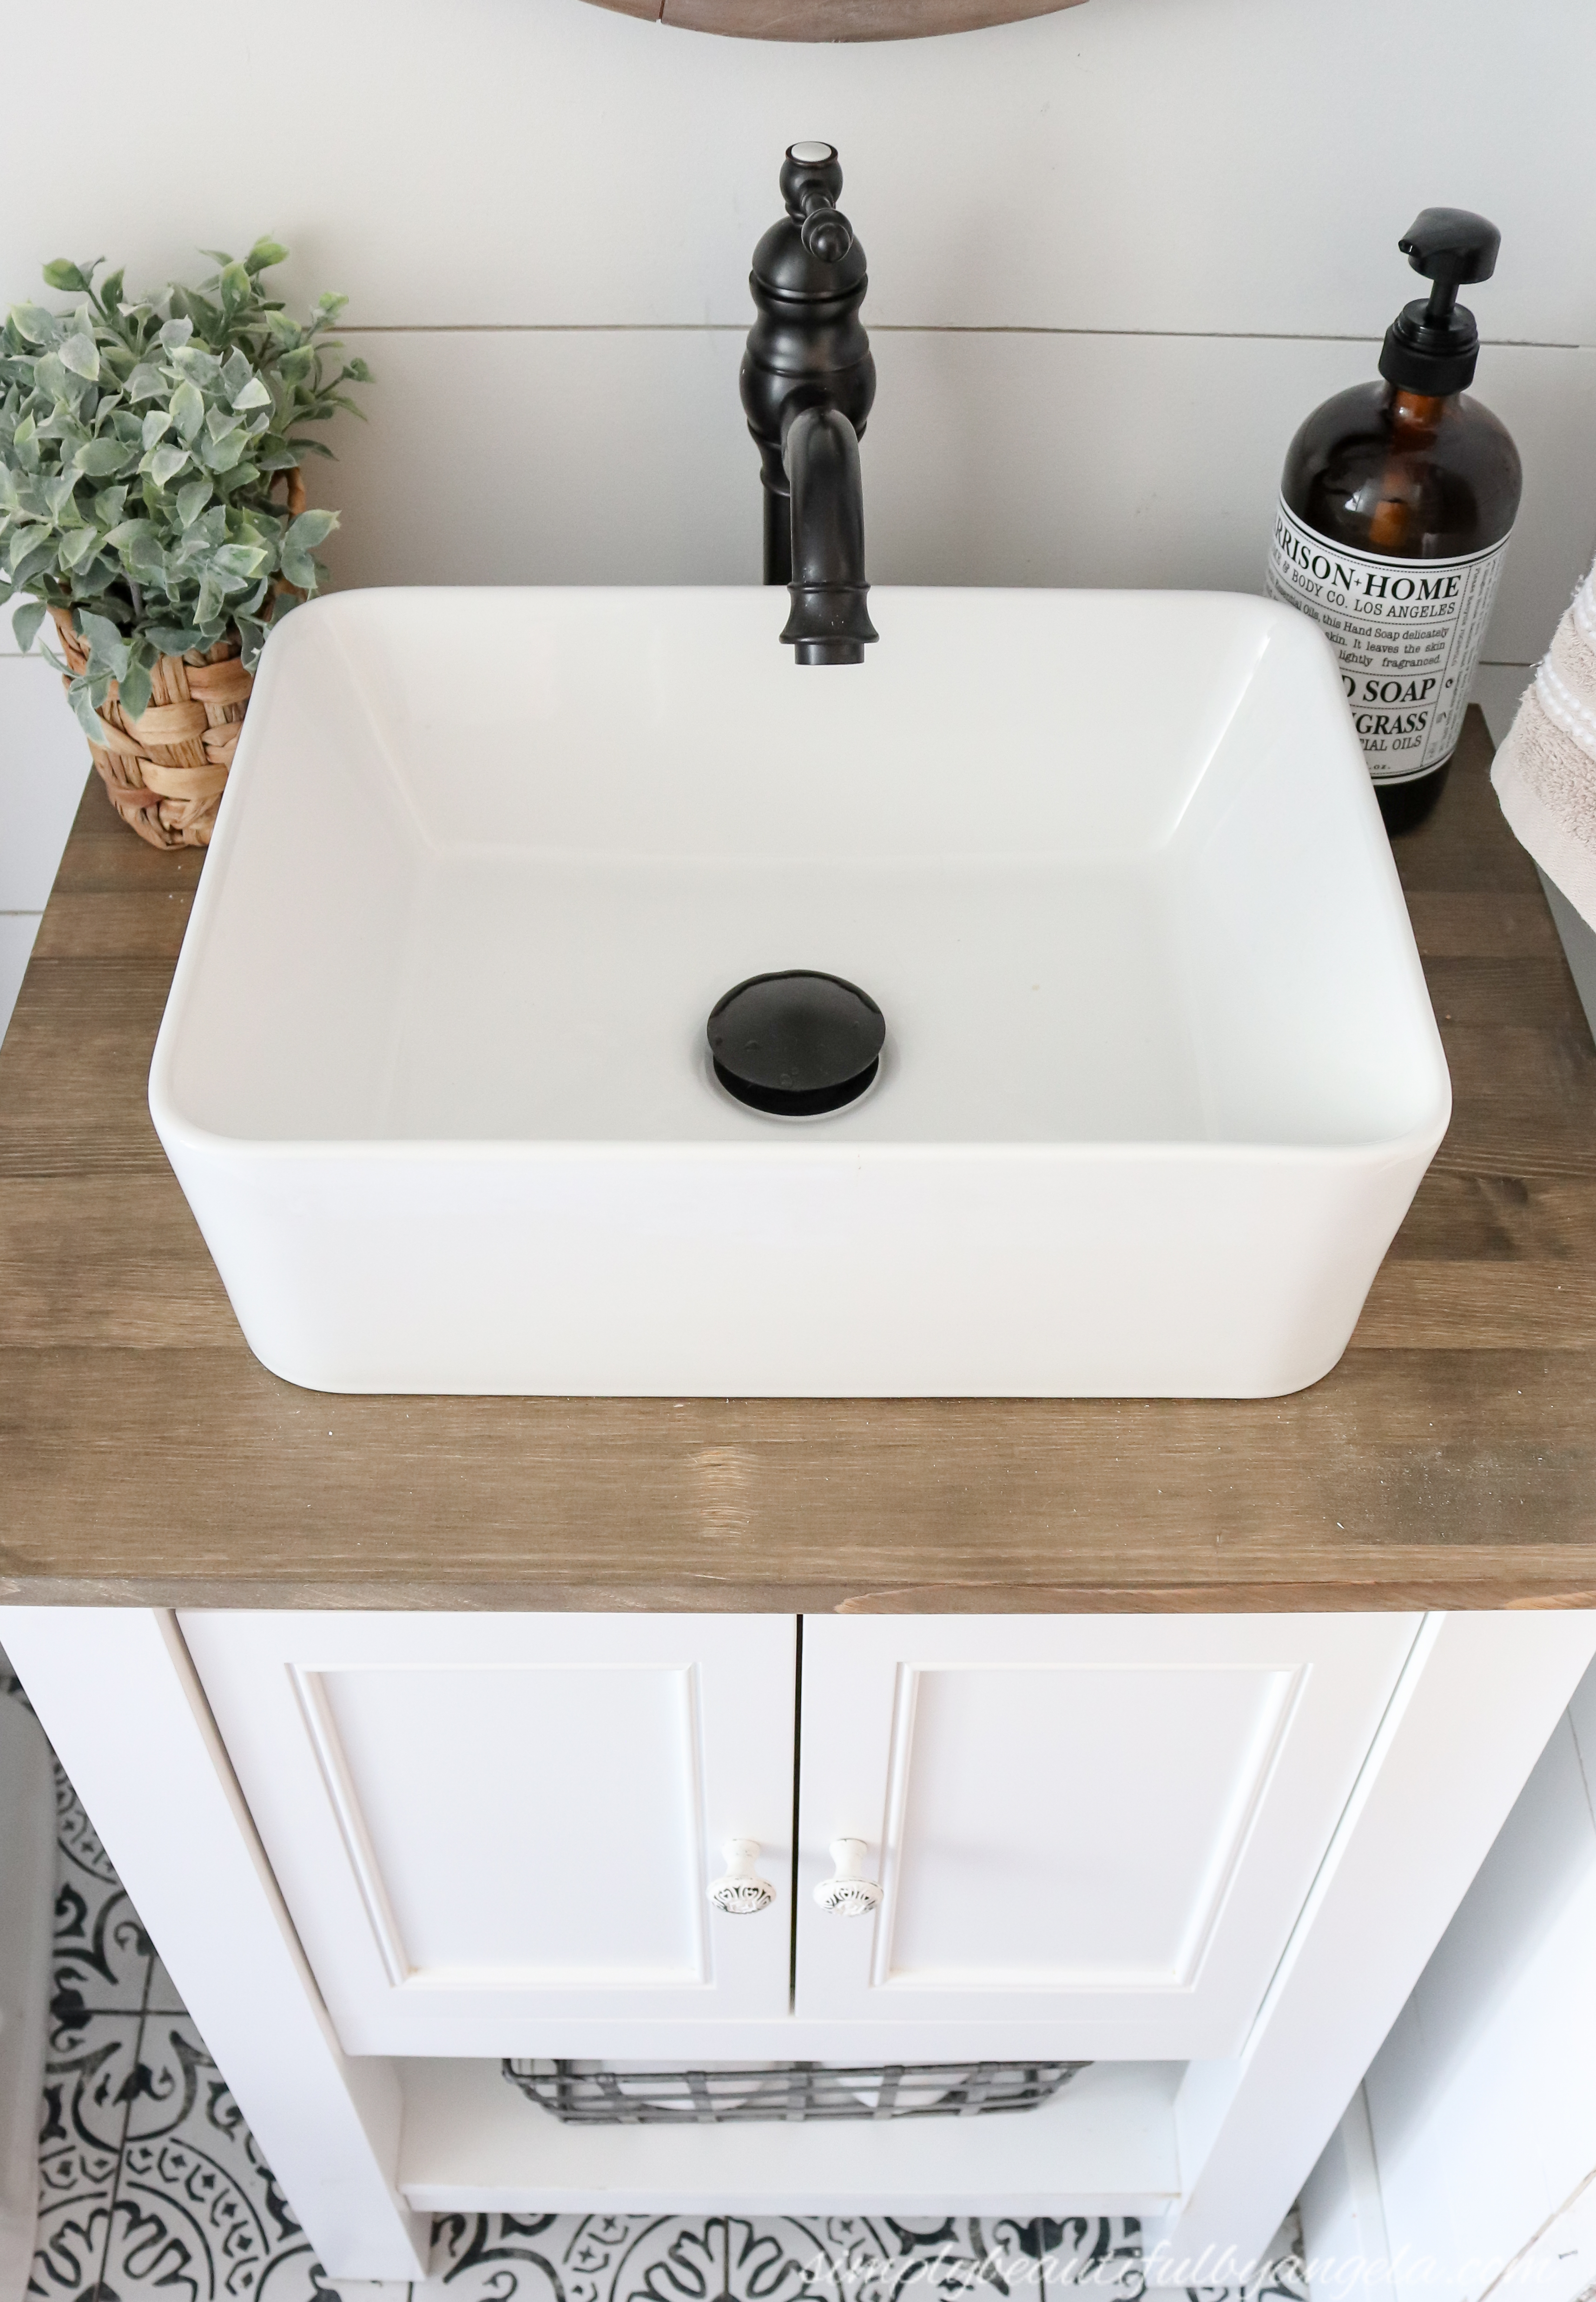 Diy Farmhouse Style Vanity Combo Vessel Sink Wood Counter 12 Simply Beautiful By Angela